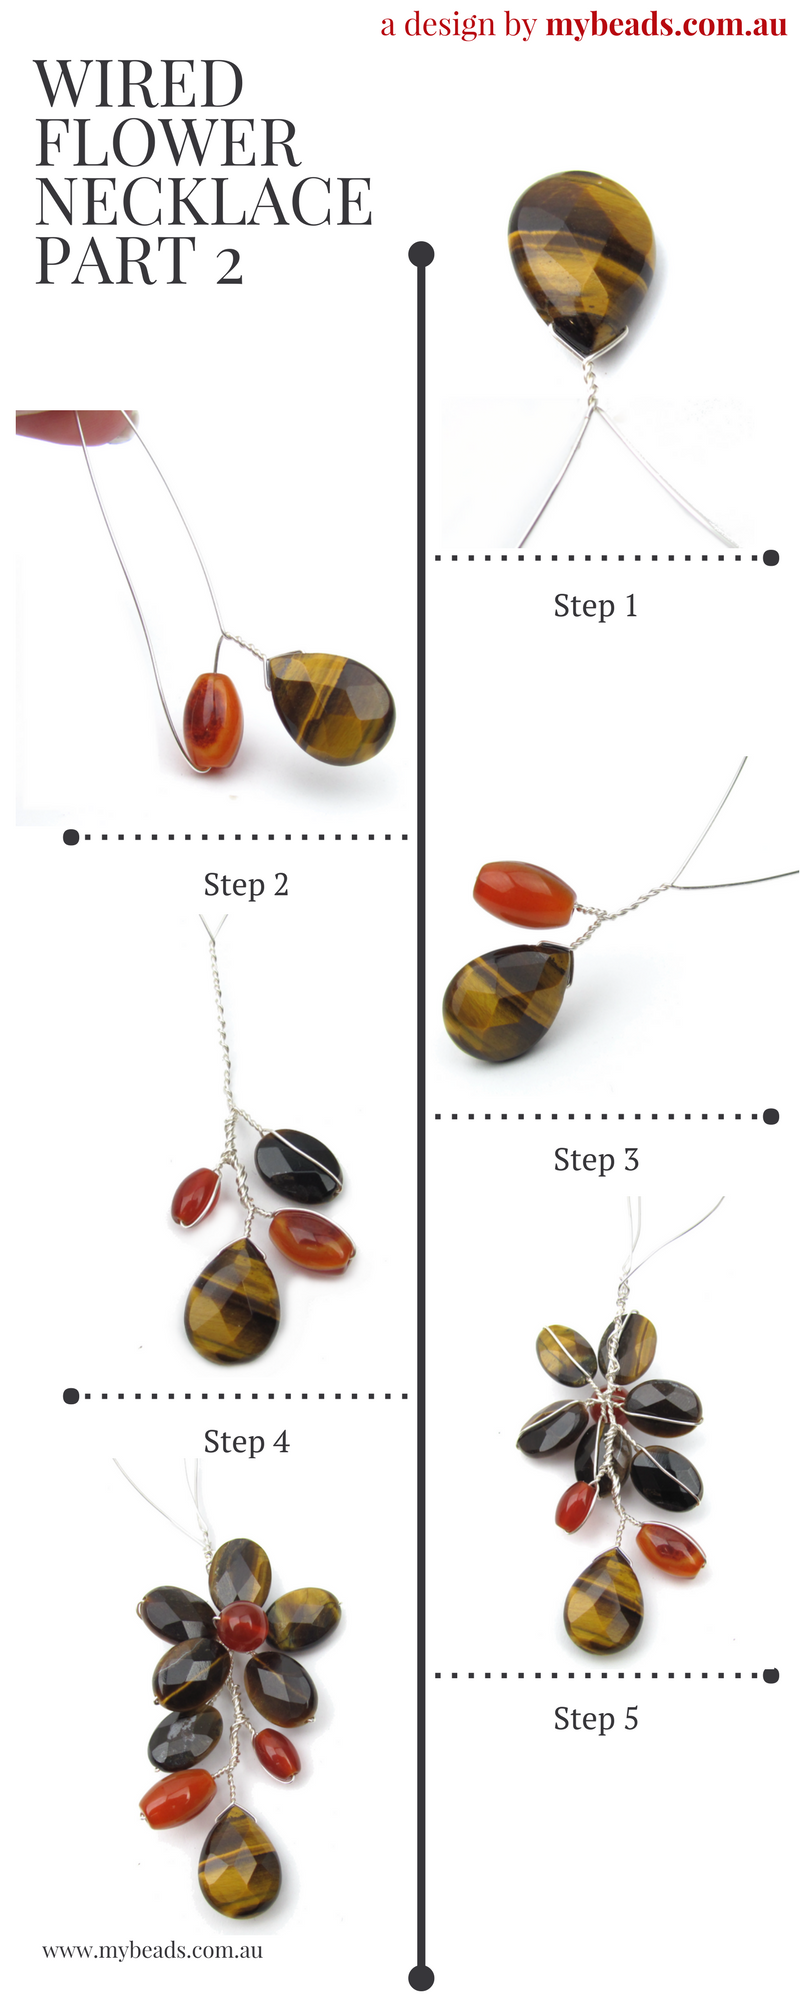 Tiger Eye and Carnelian Wired Flower Necklace Tutorial